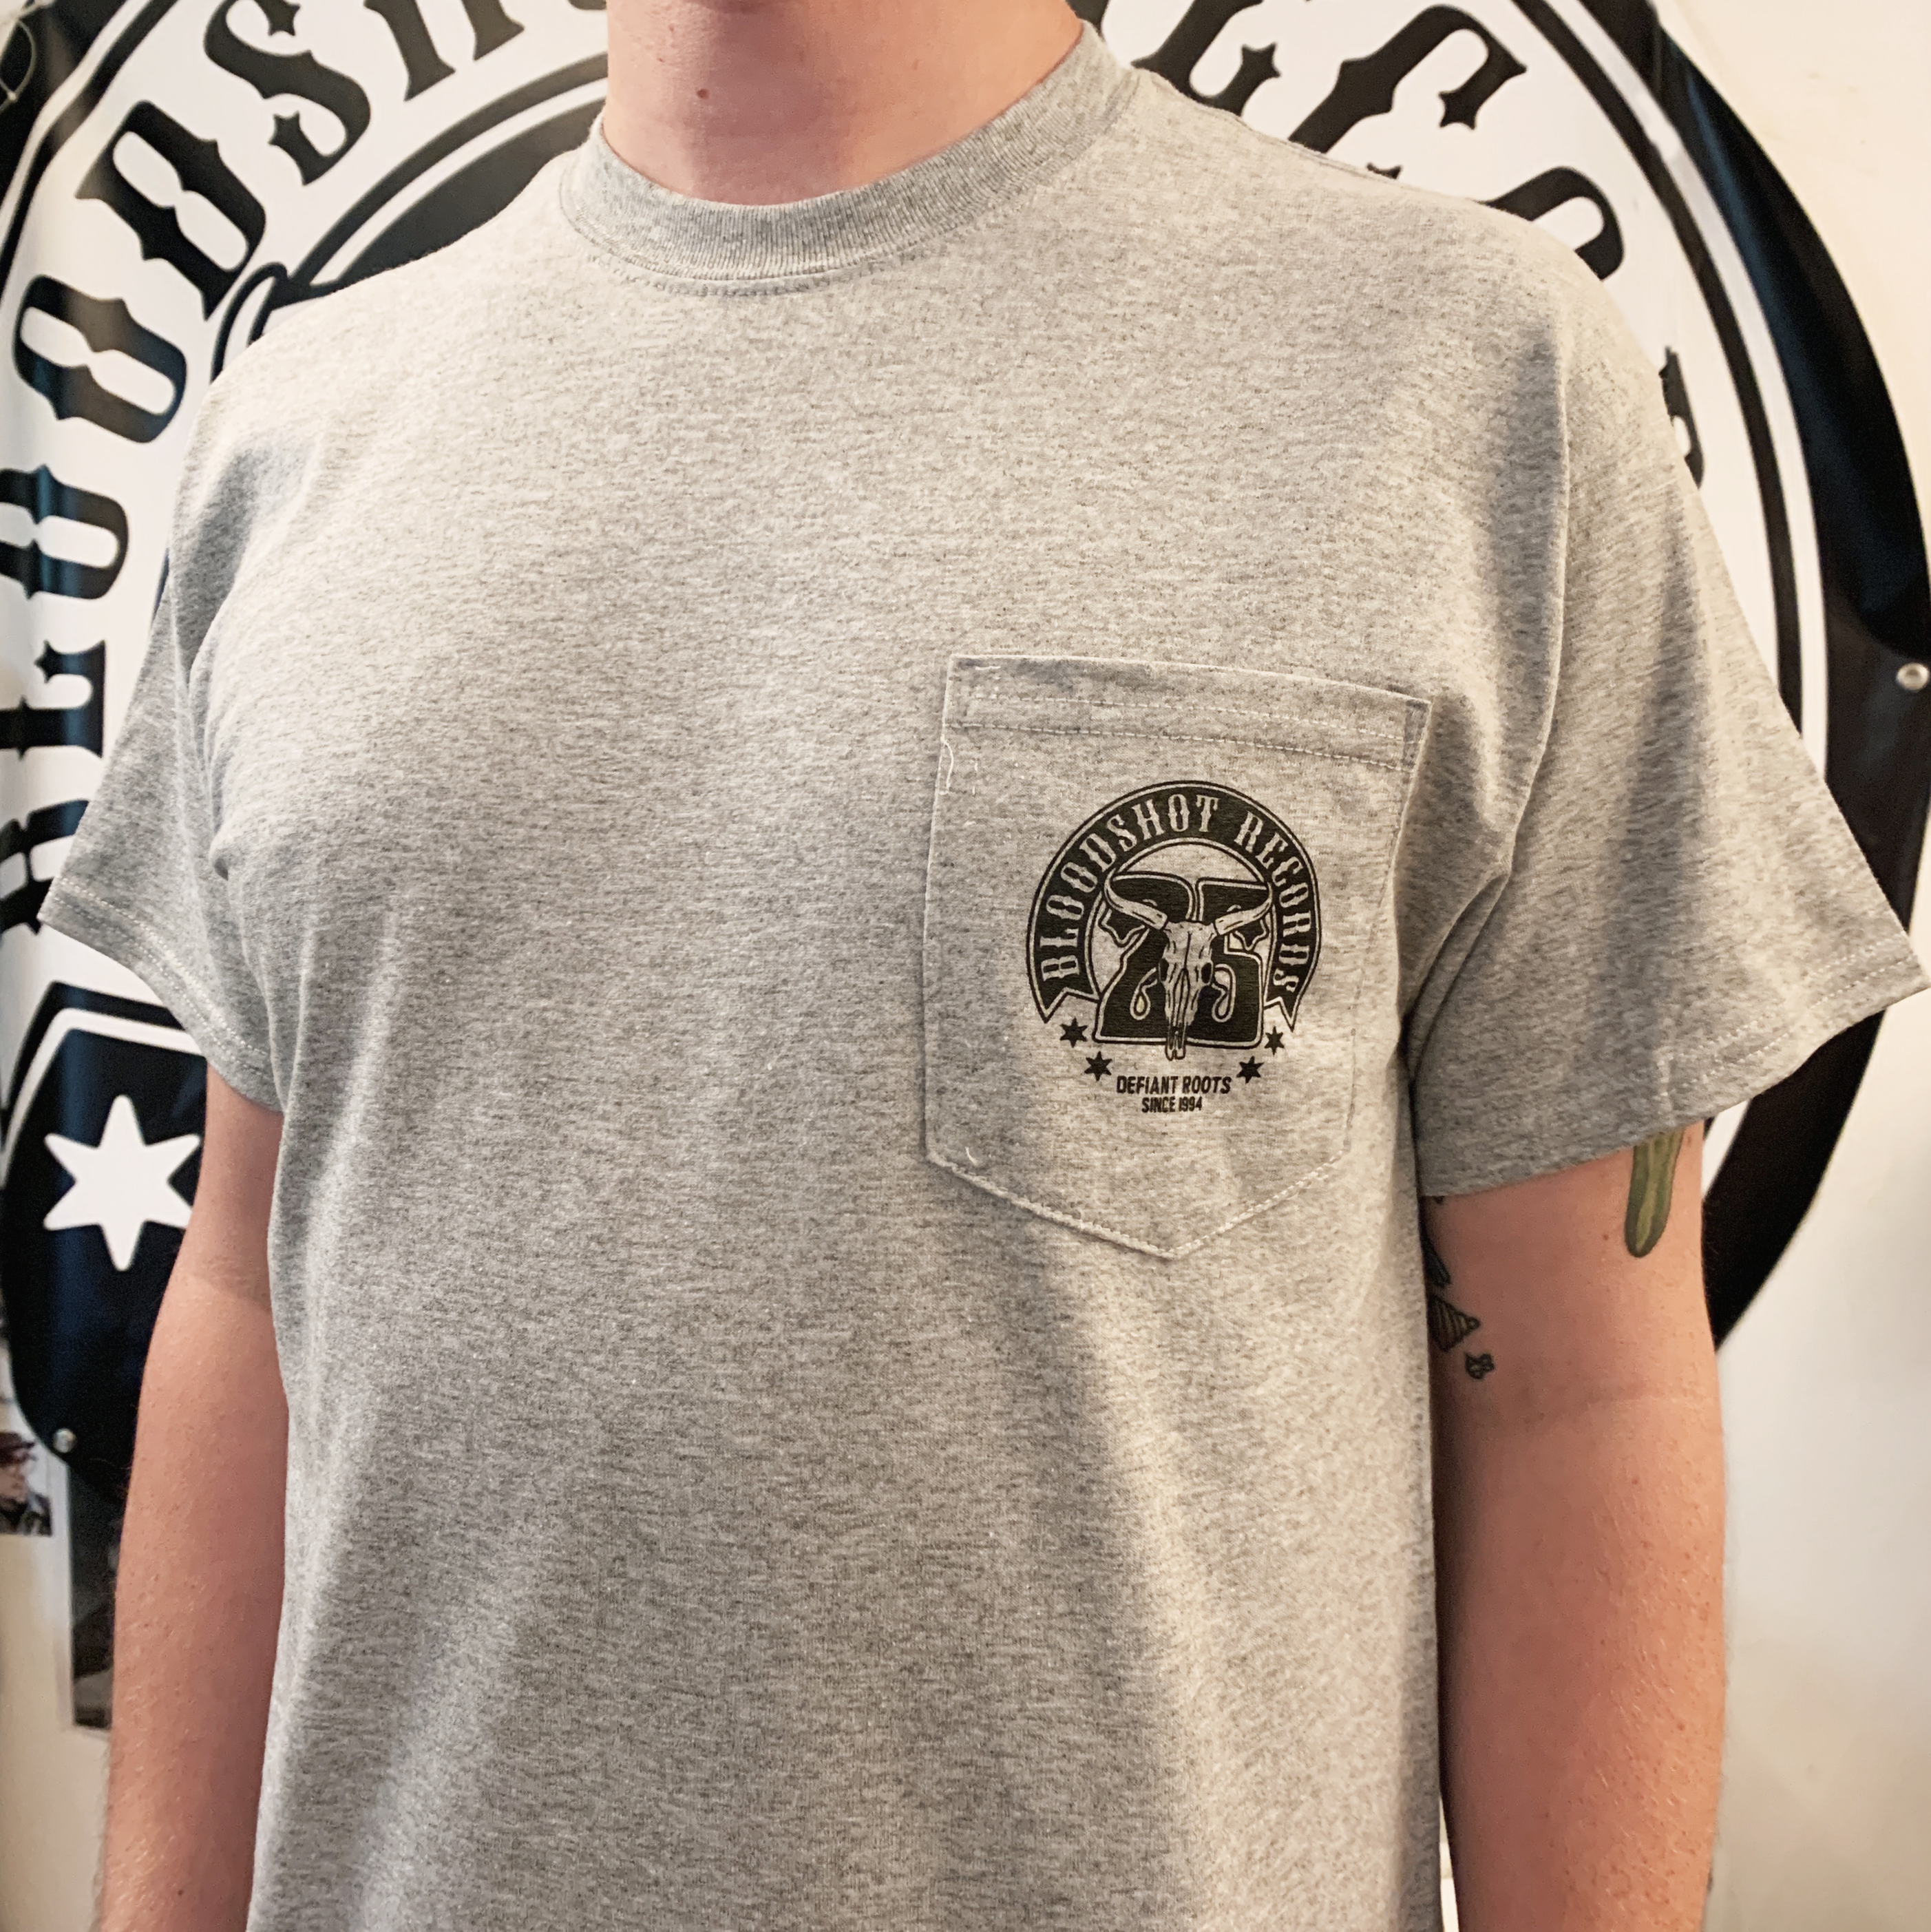 Bloodshot Records 25th anniversary pocket t-shirt